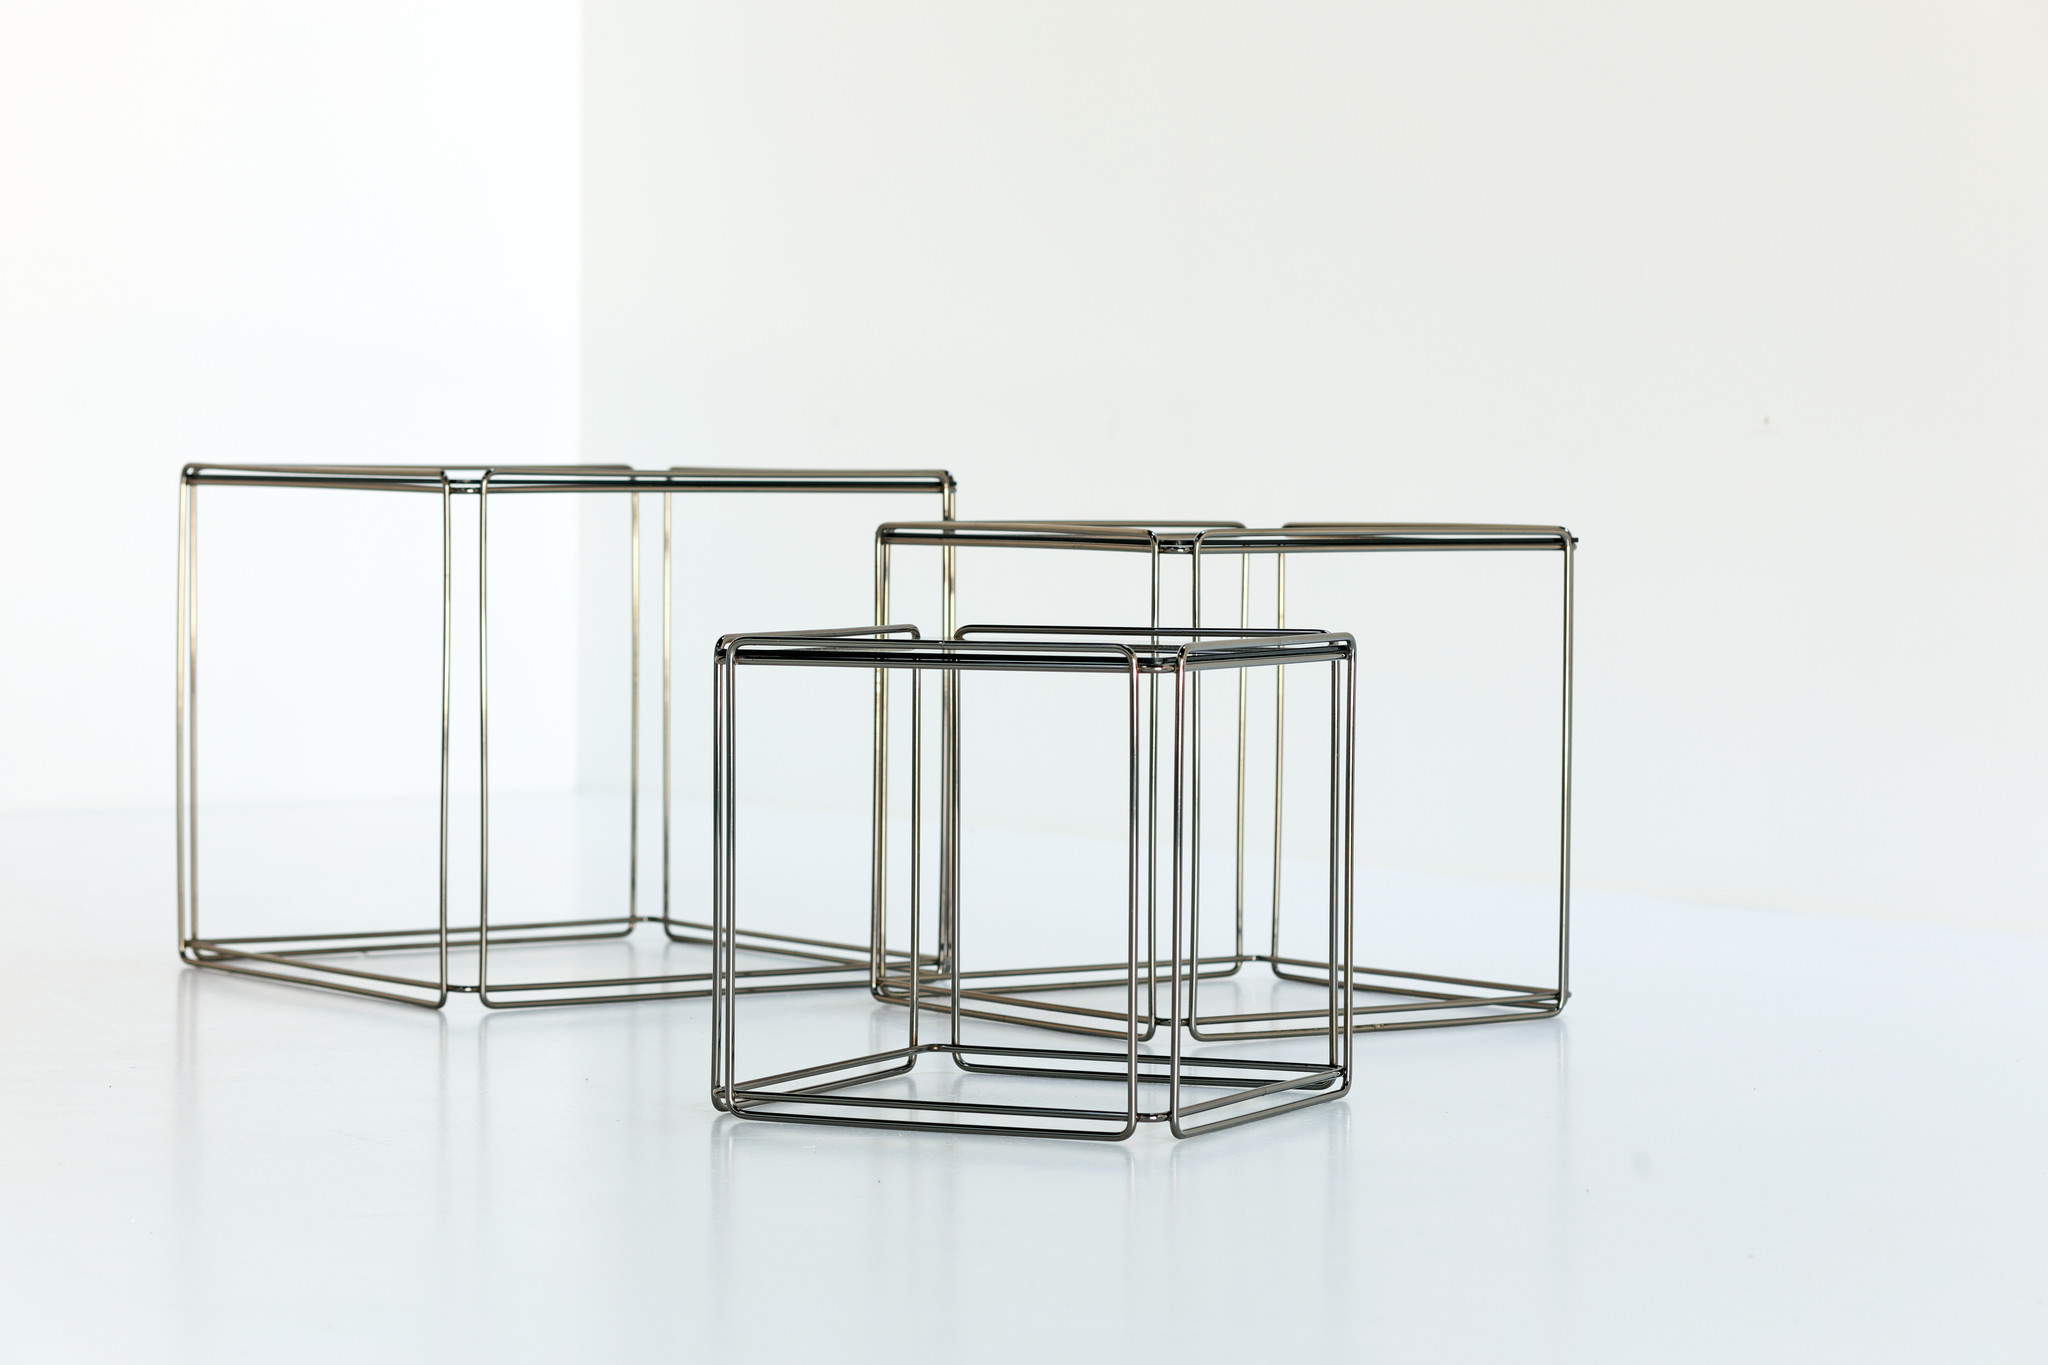 SET OF 3 SIDE TABLES DESIGNED BY MAX SAUZE FOR ATOW, 1980's